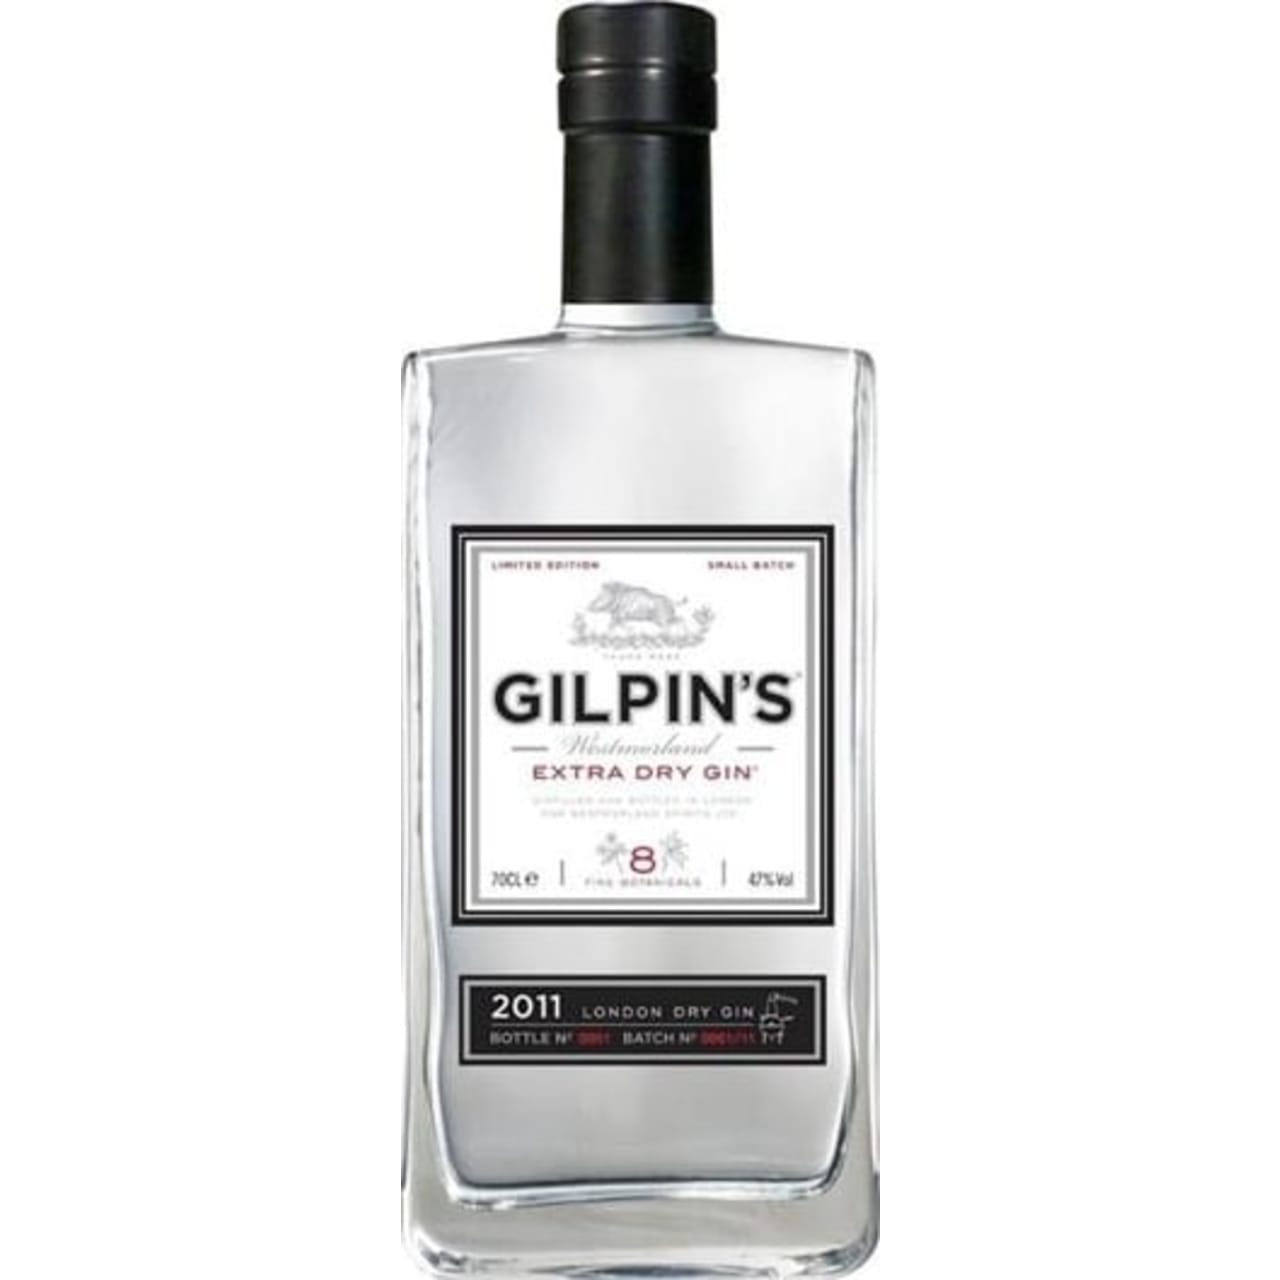 Product Image - Gilpin's Westmorland Extra Dry Gin